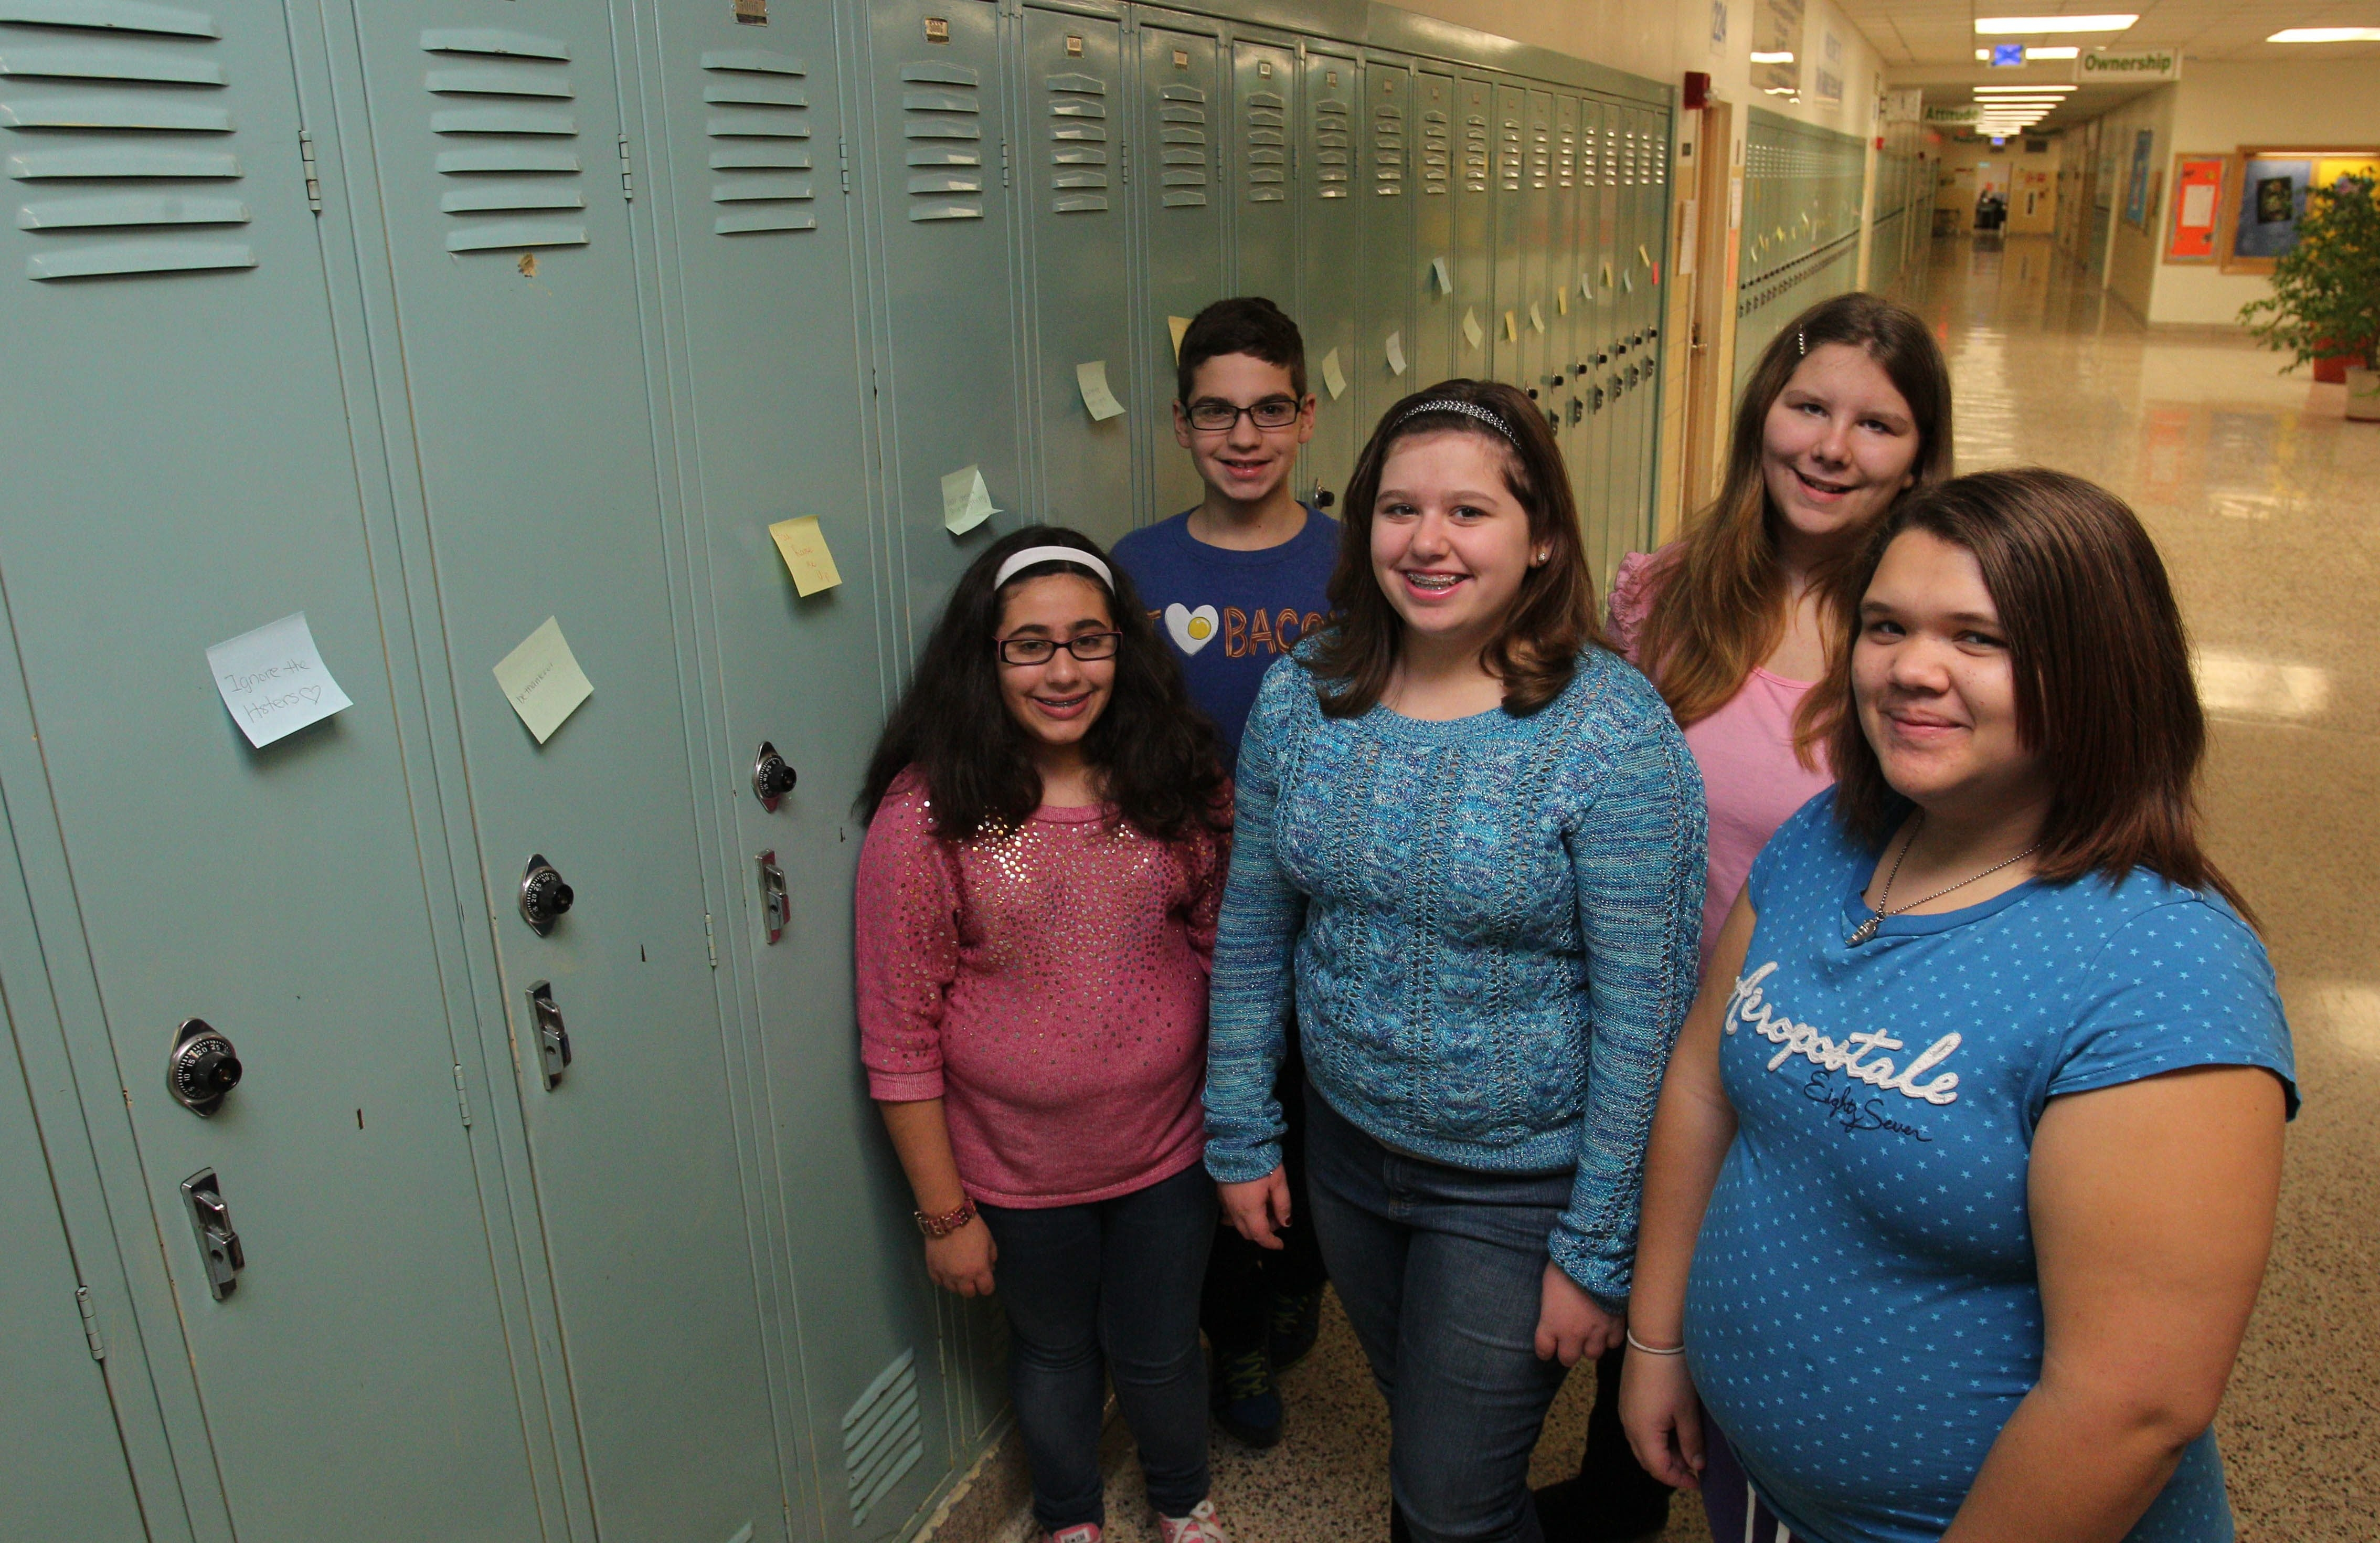 Post-it Project members from left, Chloe Avino, Zach Kalinowski, Alyssa Germano, Victoria Carberry and Ariana Rodeboro pose near lockers adorned with some of their handiwork at Hoover Middle School on Wednesday.